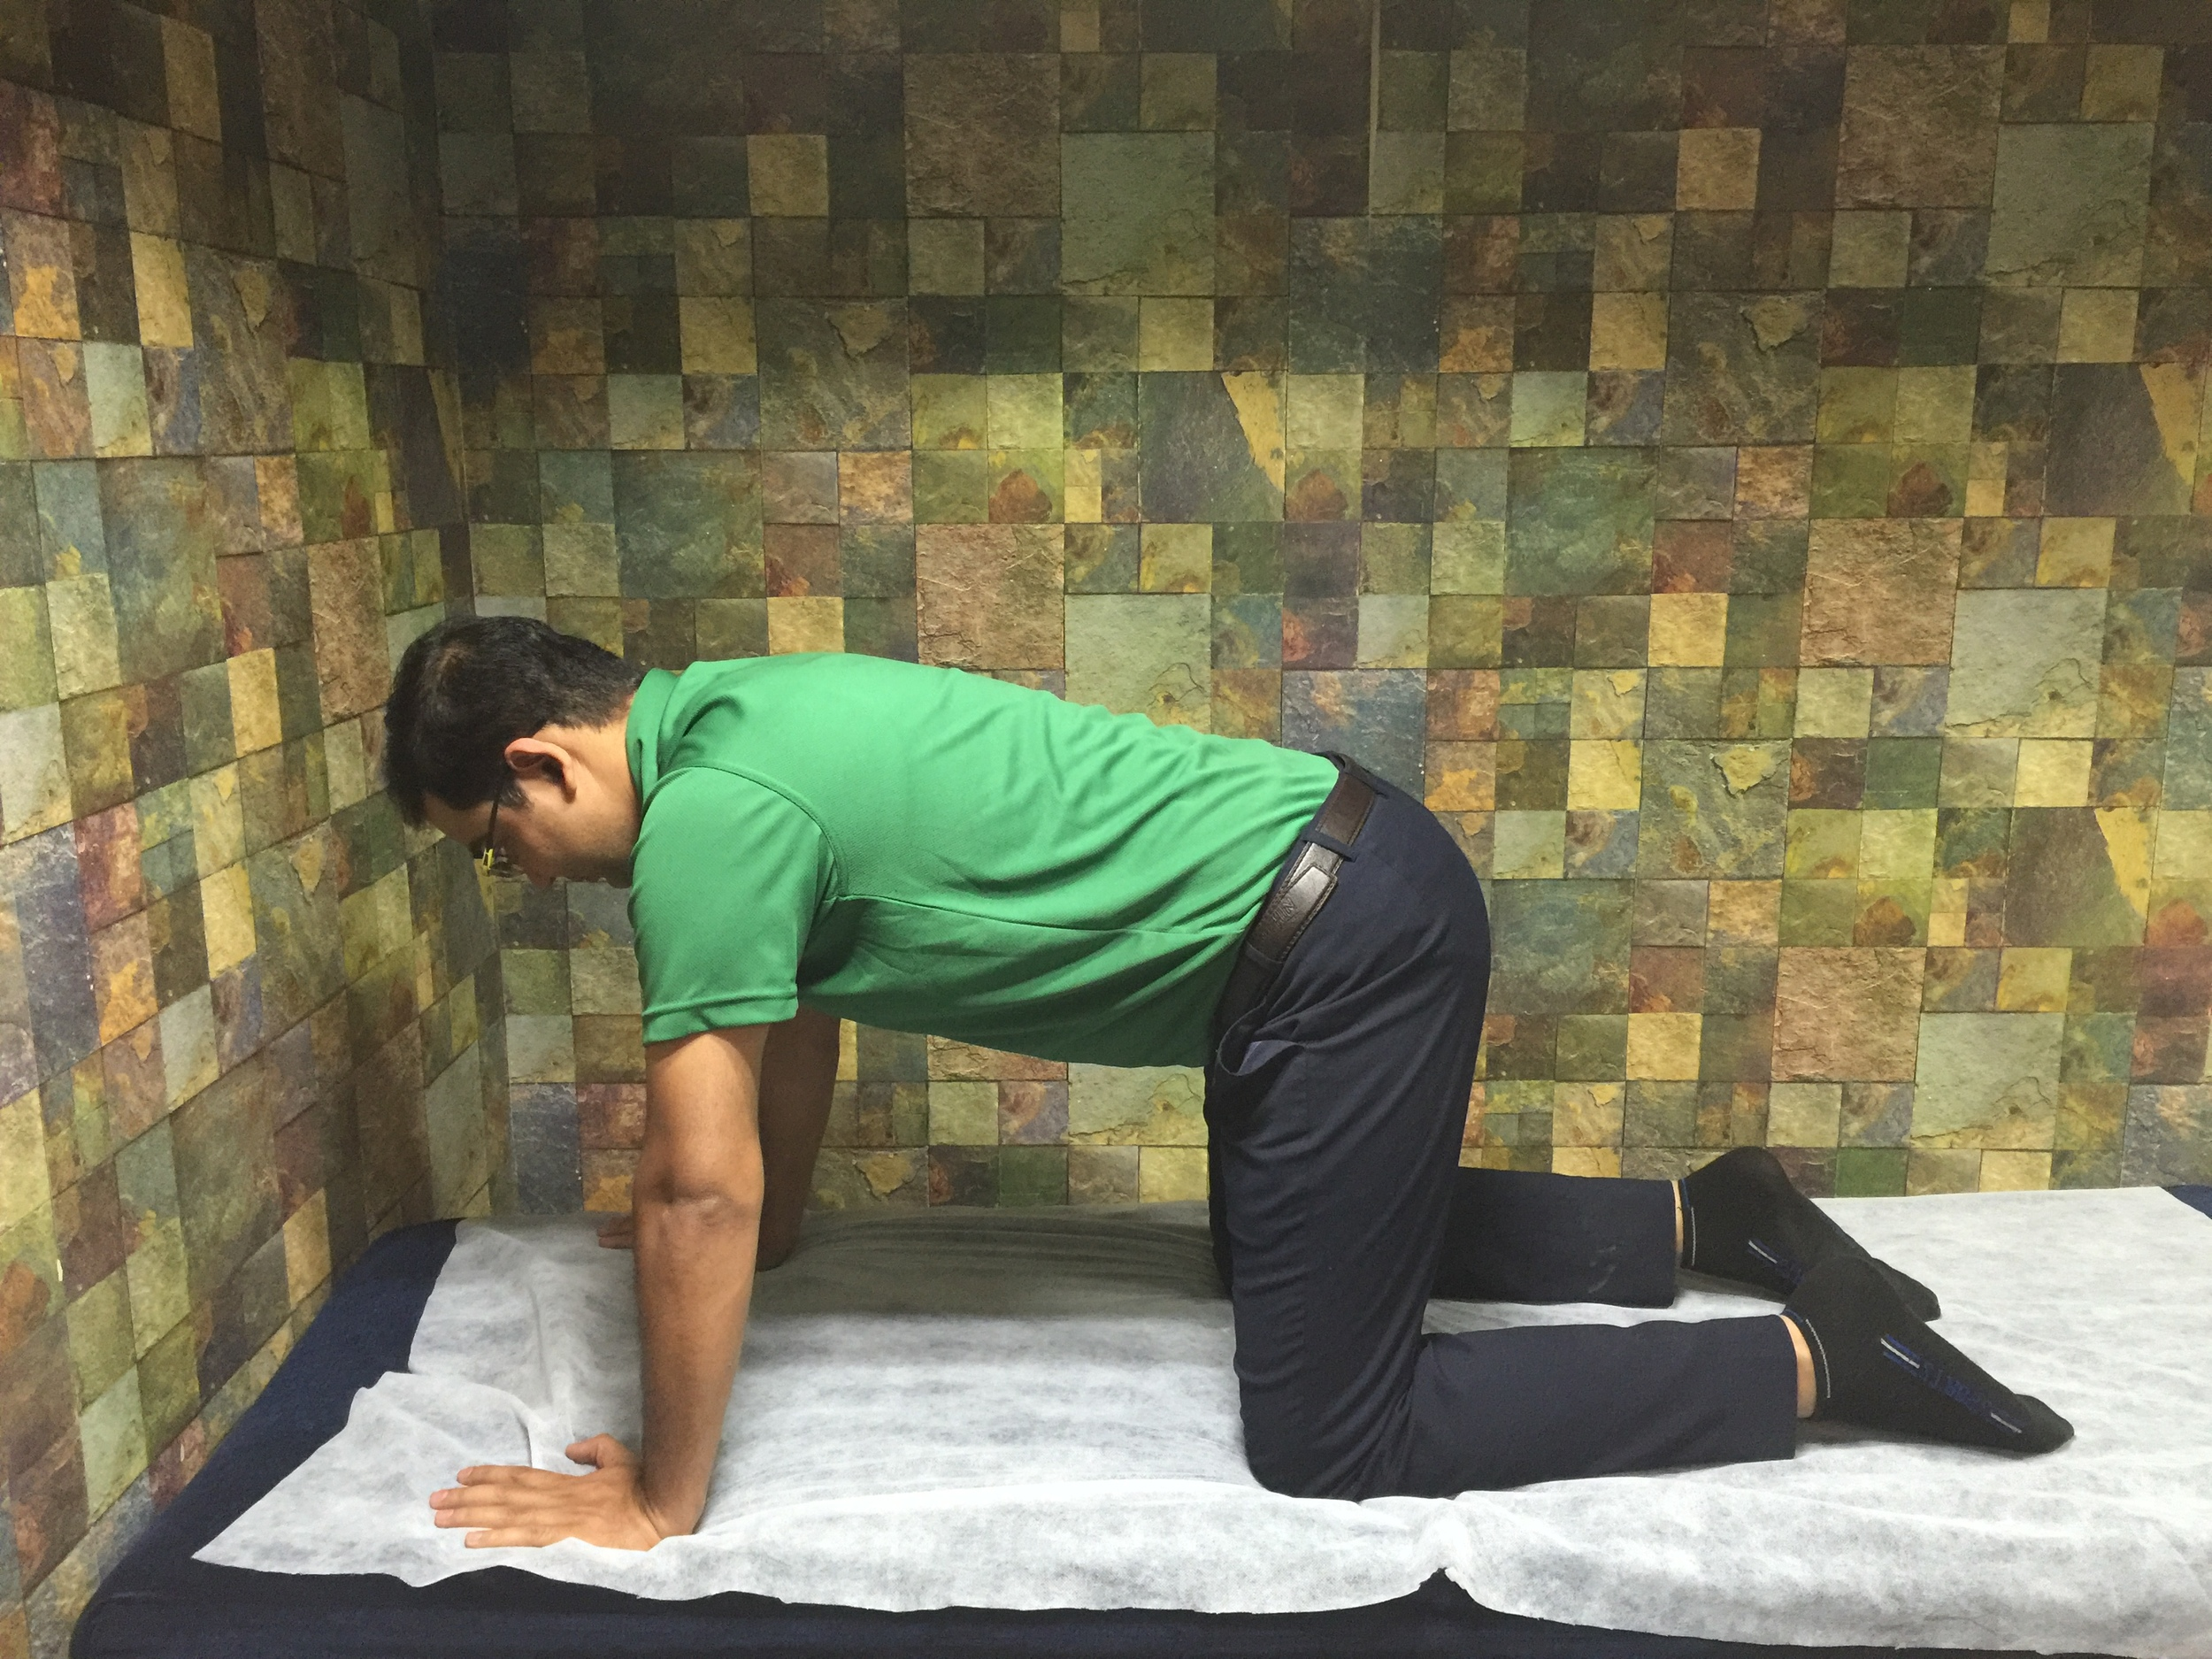 Get on all fours. Place your feet shoulder-width apart and your elbows right under your shoulders.